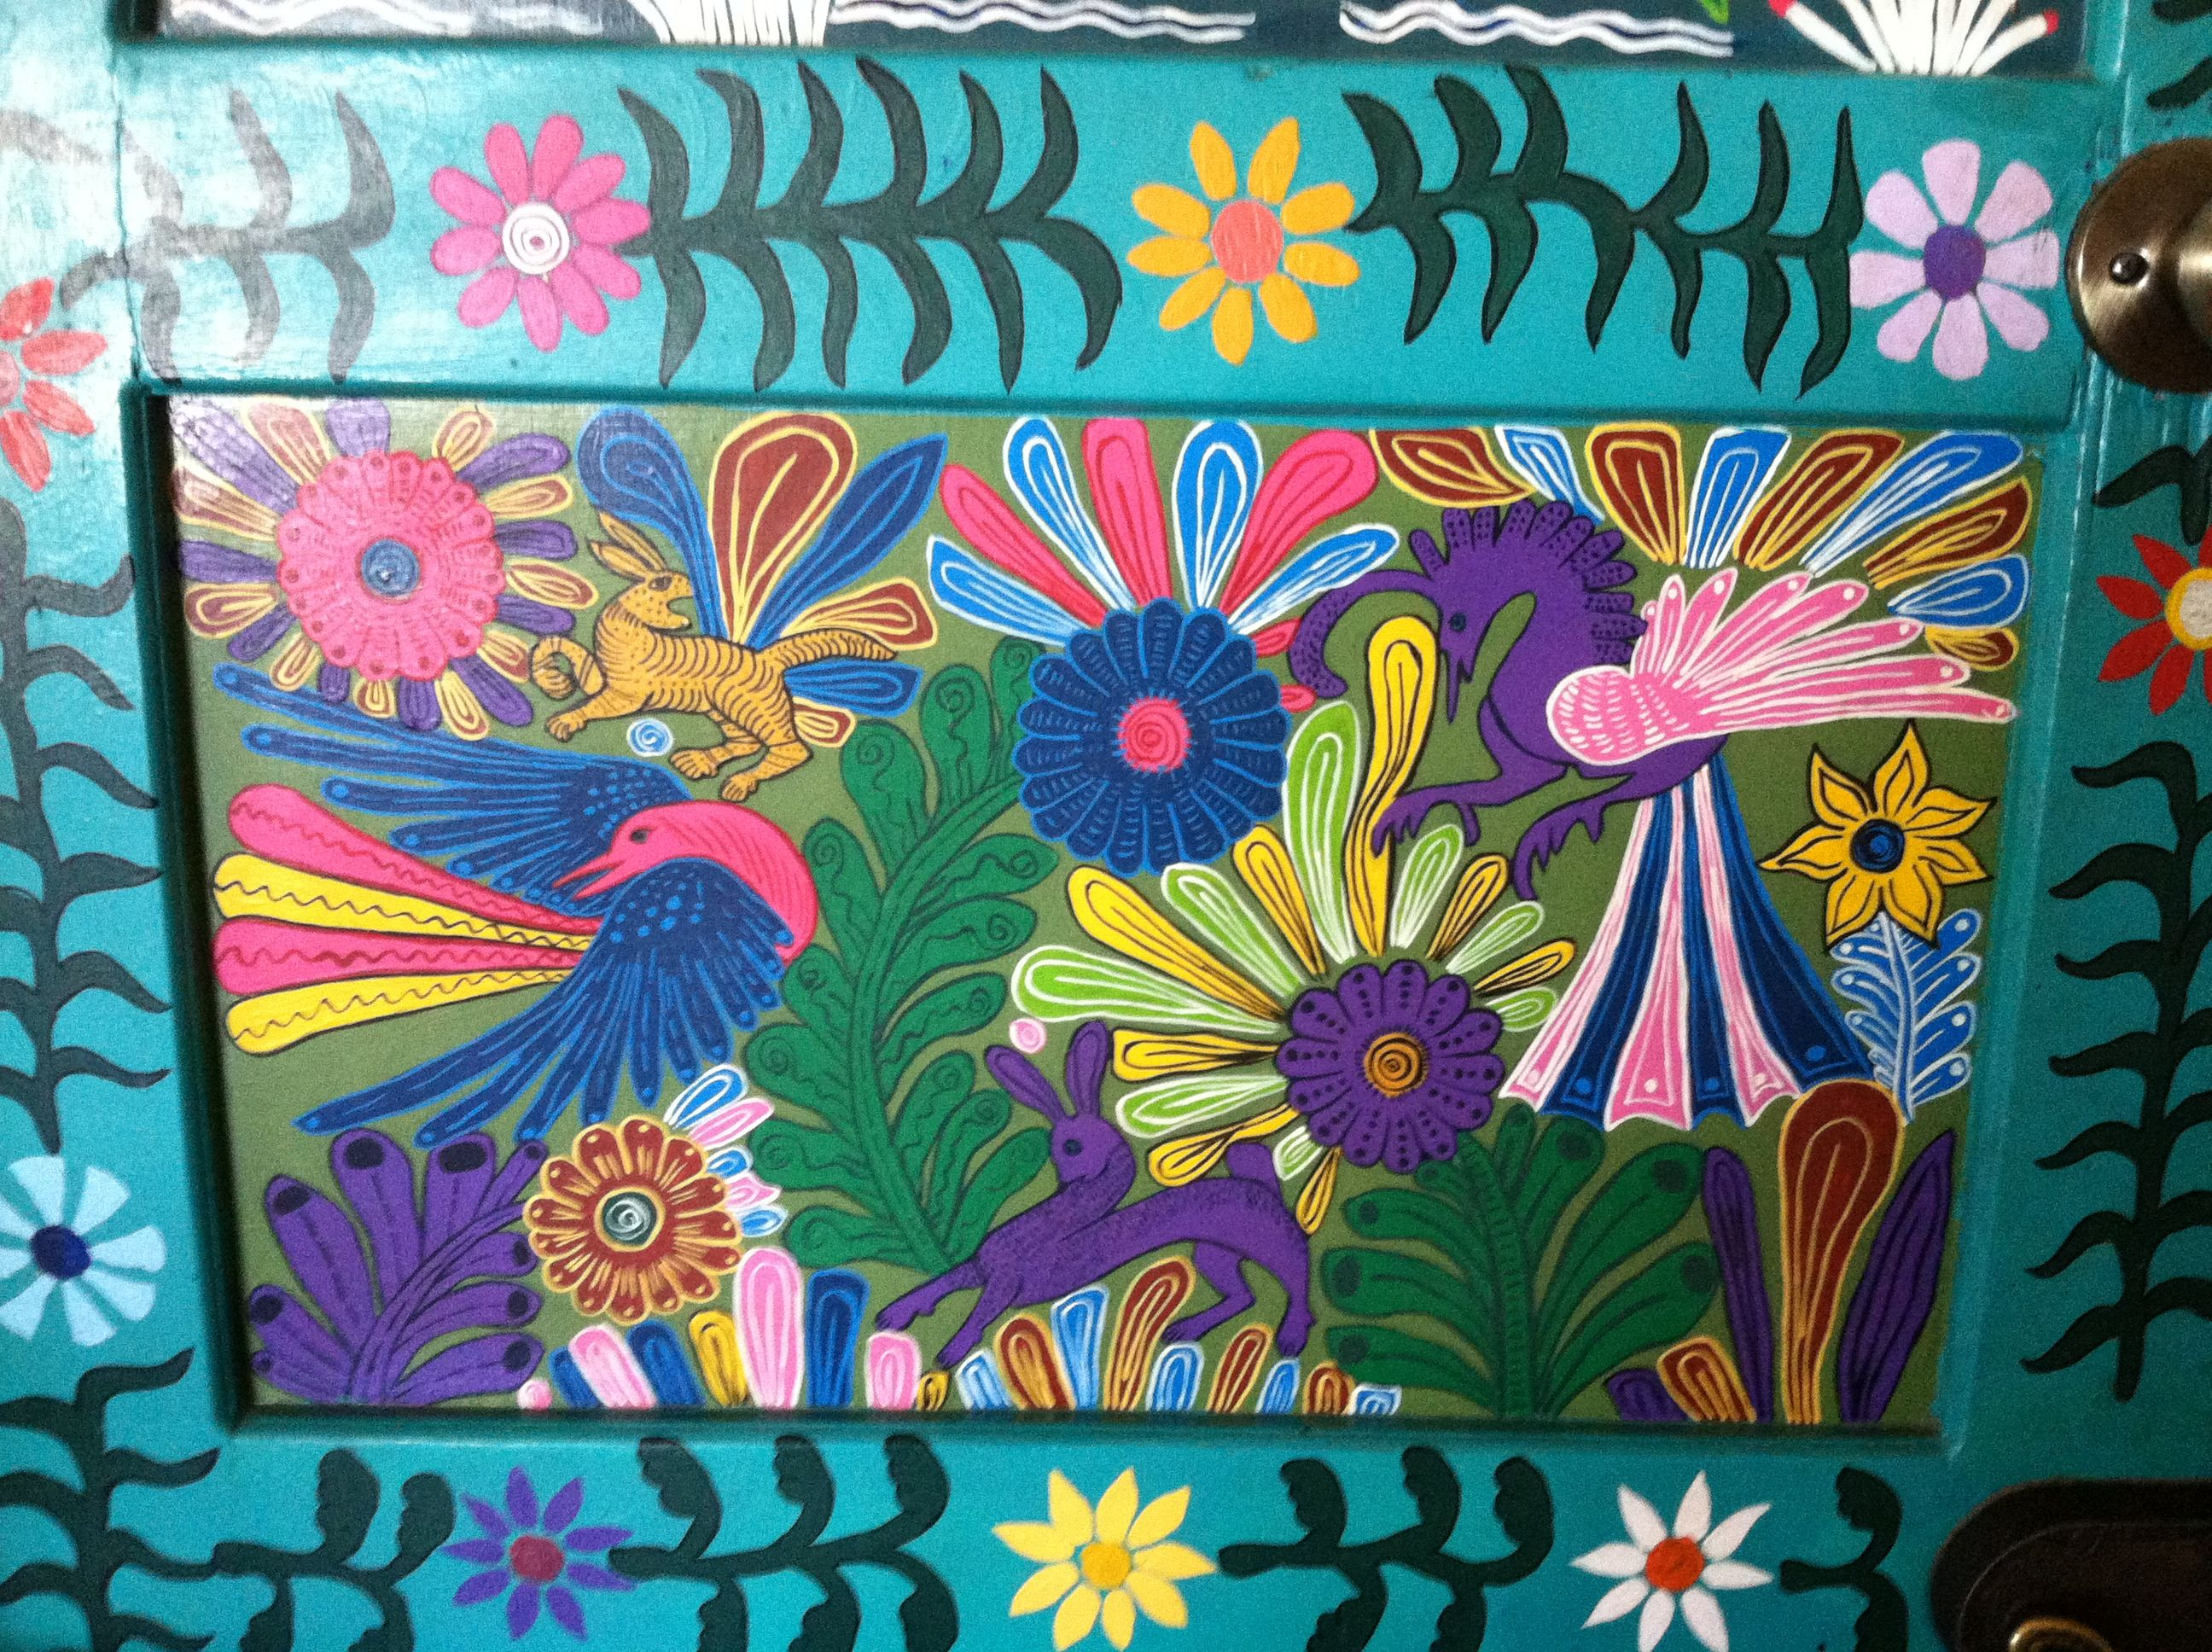 Door panels of entrance to Friendly Dauphin Restaurant in Mexico